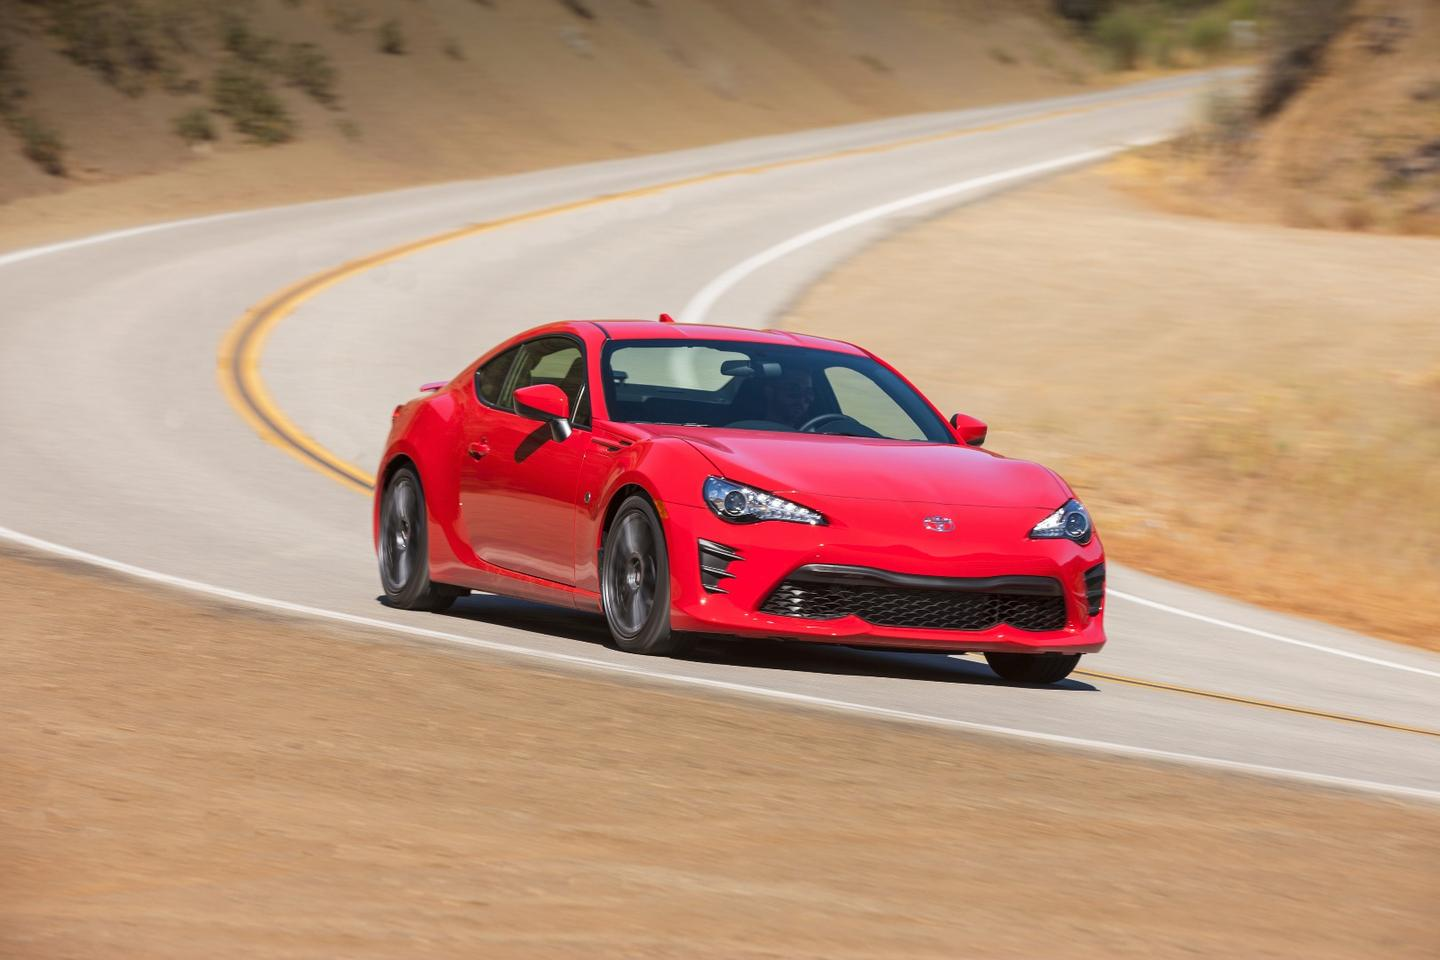 The 2017 Toyota 86 is both a goodeveryday driver with a fun demeanor as well as a good first-timer's sports coupe